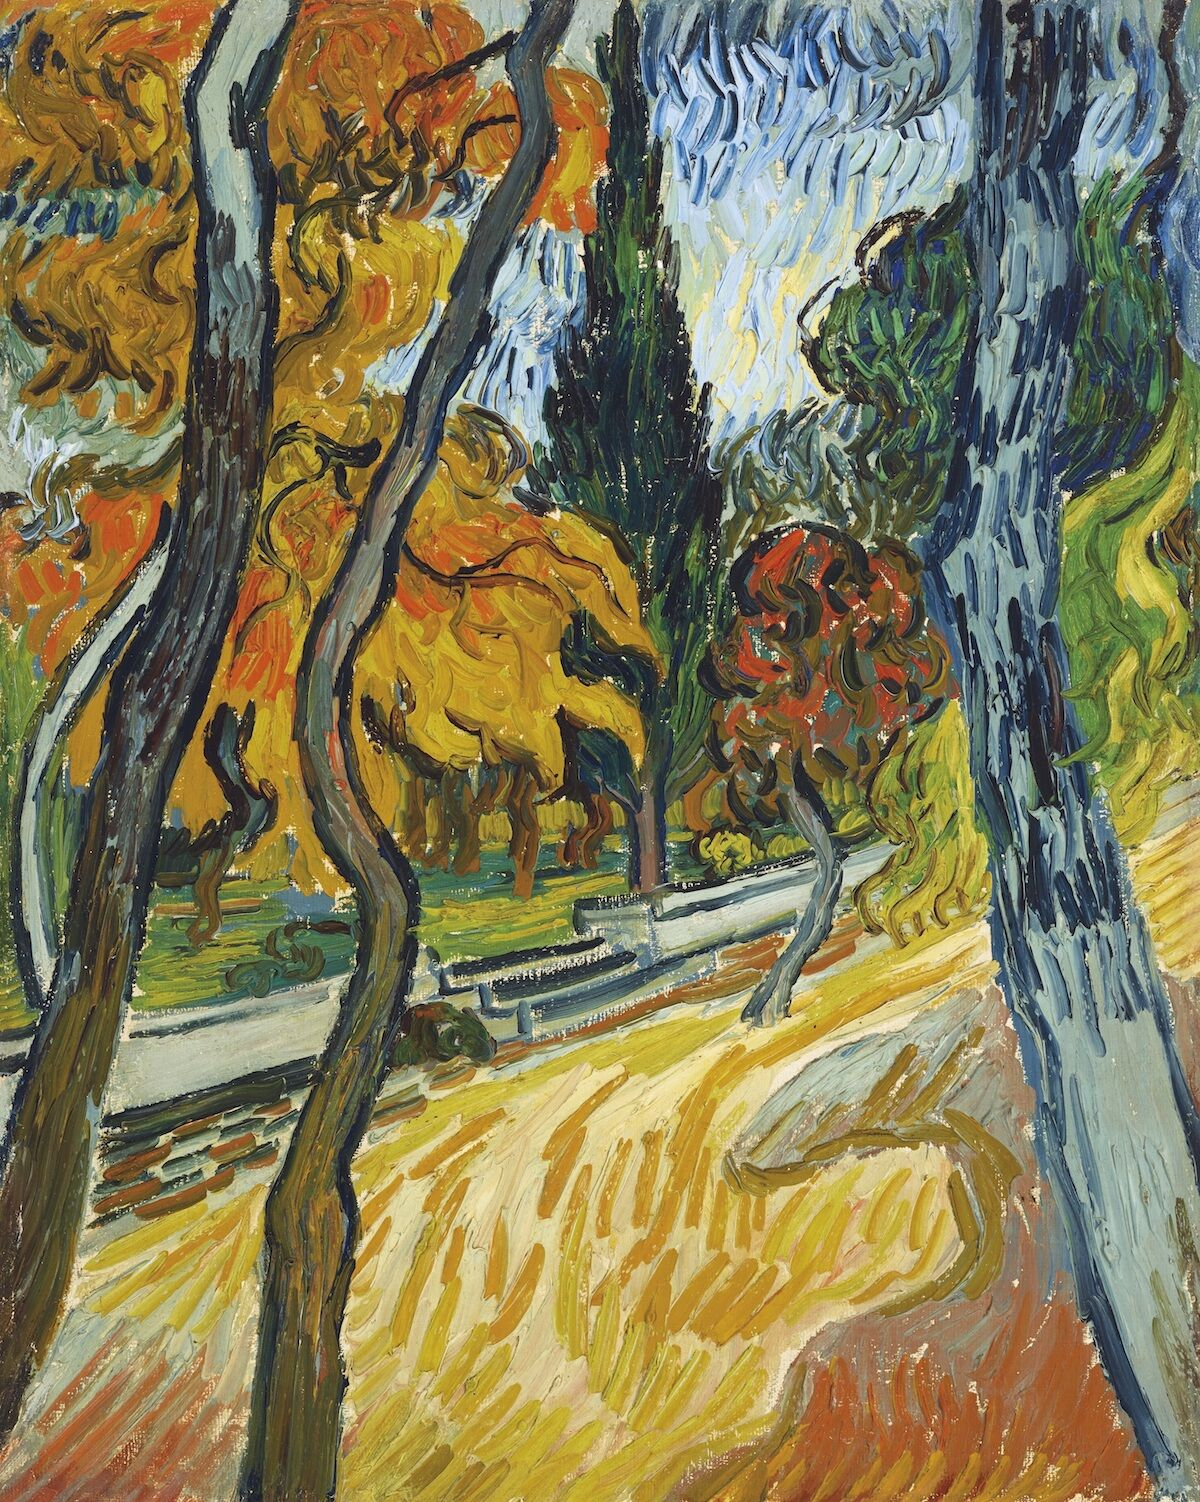 Vincent van Gogh, Arbres dans le jardin de l'asile, 1889, oil on canvas. Est. in the region of $25 million. Courtesy Christie's Images Ltd. 2019.